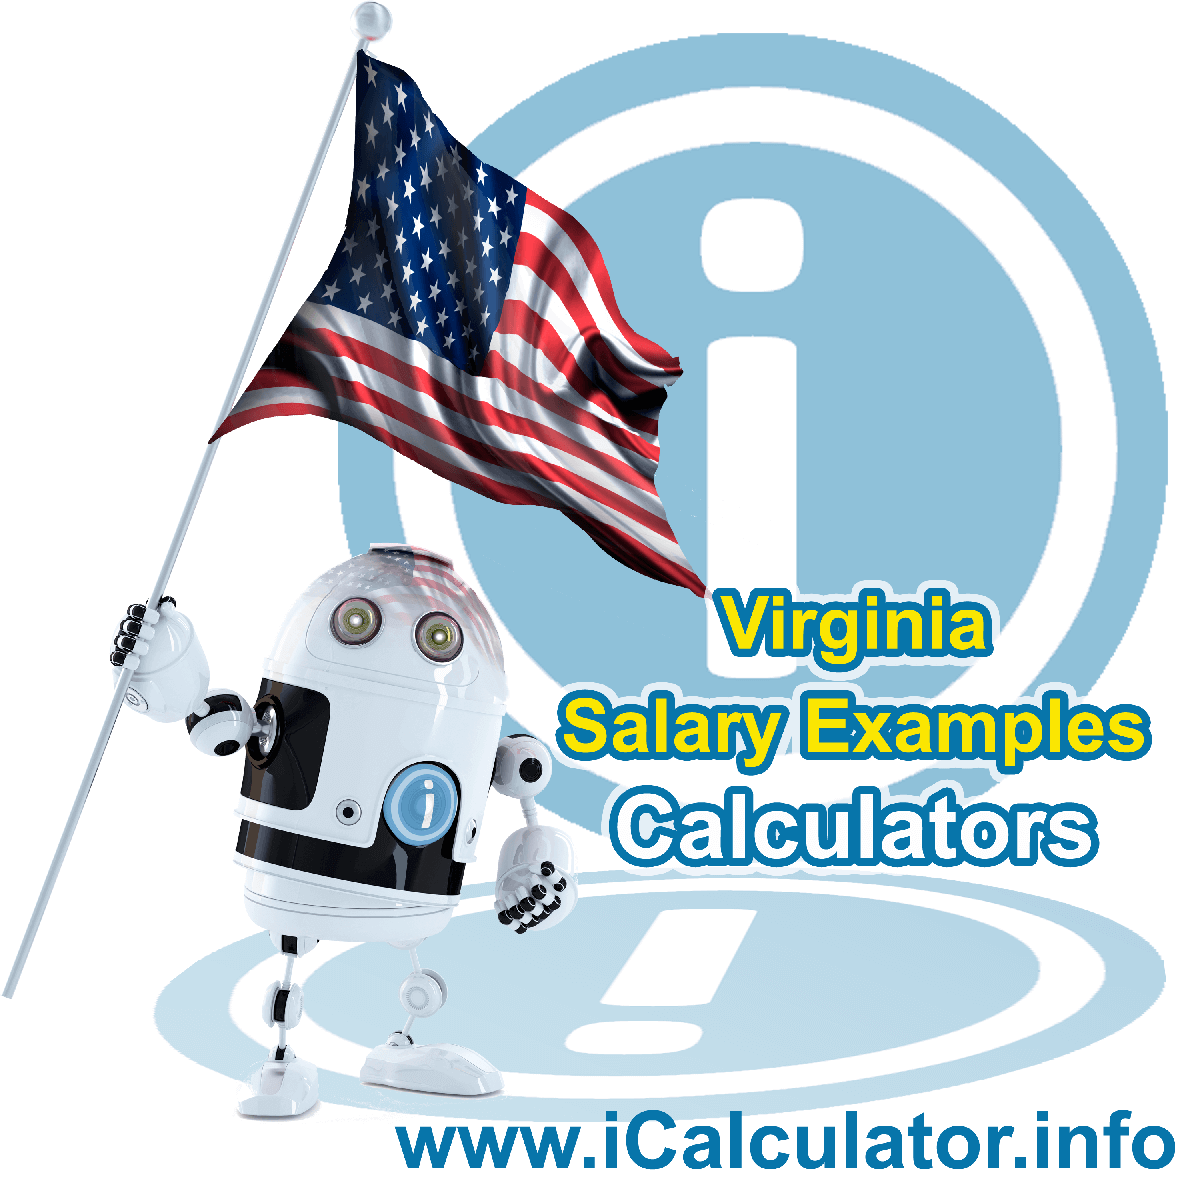 Virginia Salary Example for $50,000.00 in 2020 | iCalculator | $50,000.00 salary example for employee and employer paying Virginia State tincome taxes. Detailed salary after tax calculation including Virginia State Tax, Federal State Tax, Medicare Deductions, Social Security, Capital Gains and other income tax and salary deductions complete with supporting Virginia state tax tables